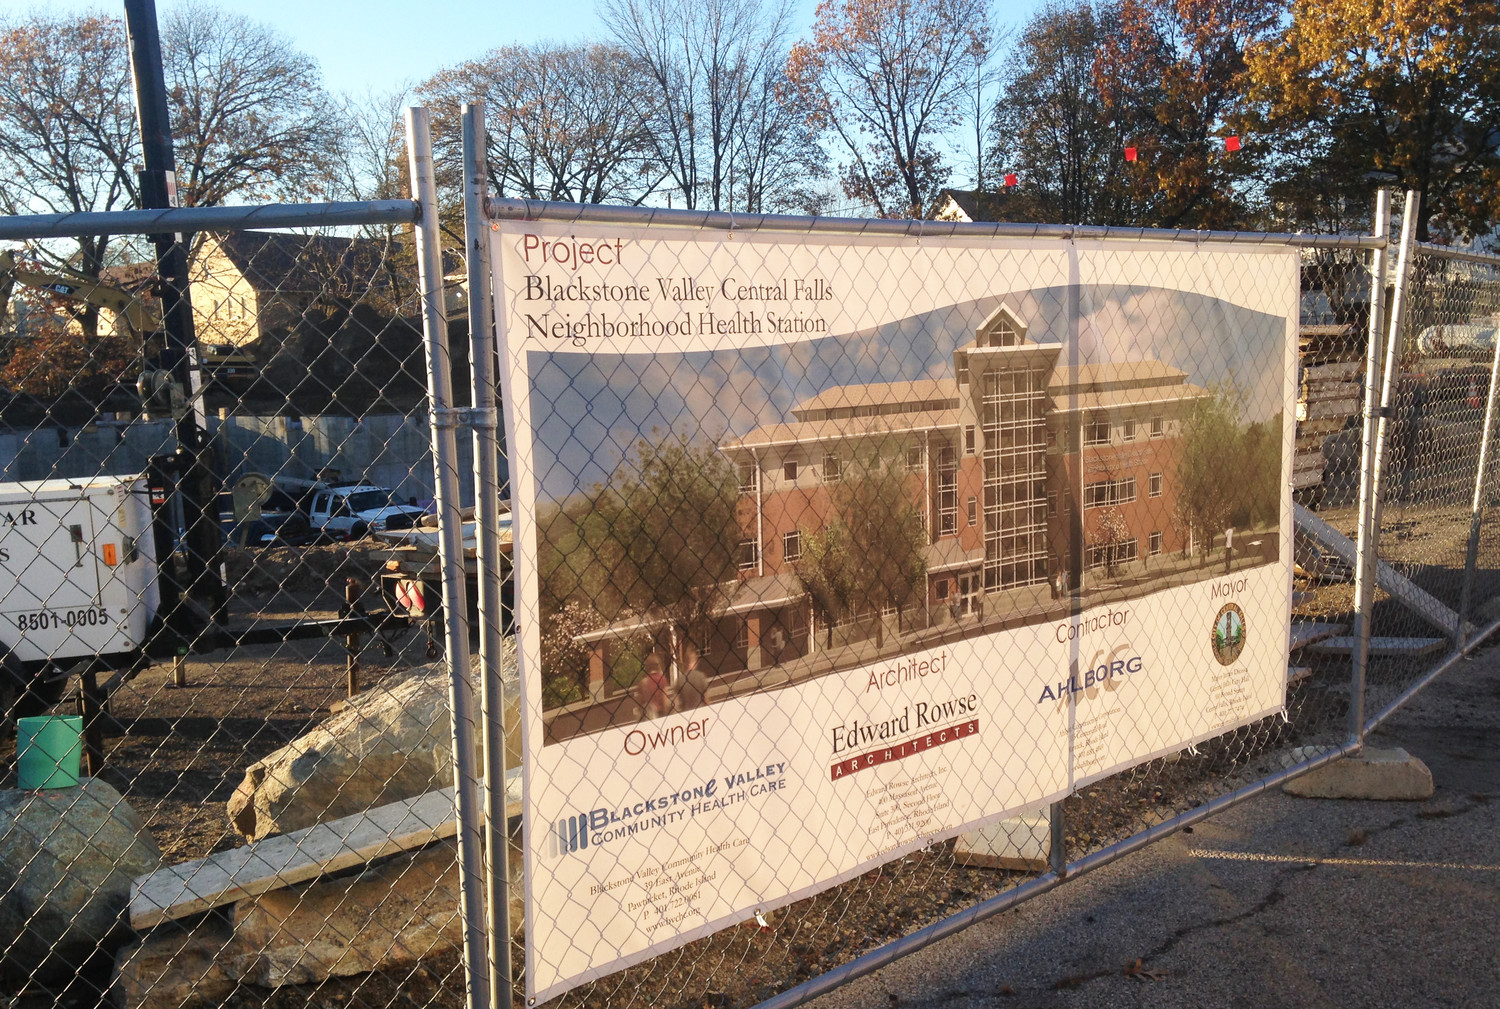 The new Neighborhood Health Station facility at 1000 Broad St. in Central Falls, being built by Blackstone Valley Community Health Care, is now under construction and scheduled to open in September of 2018,  with capability of providing primary care services to about 90 percent of the residents of Central Falls.